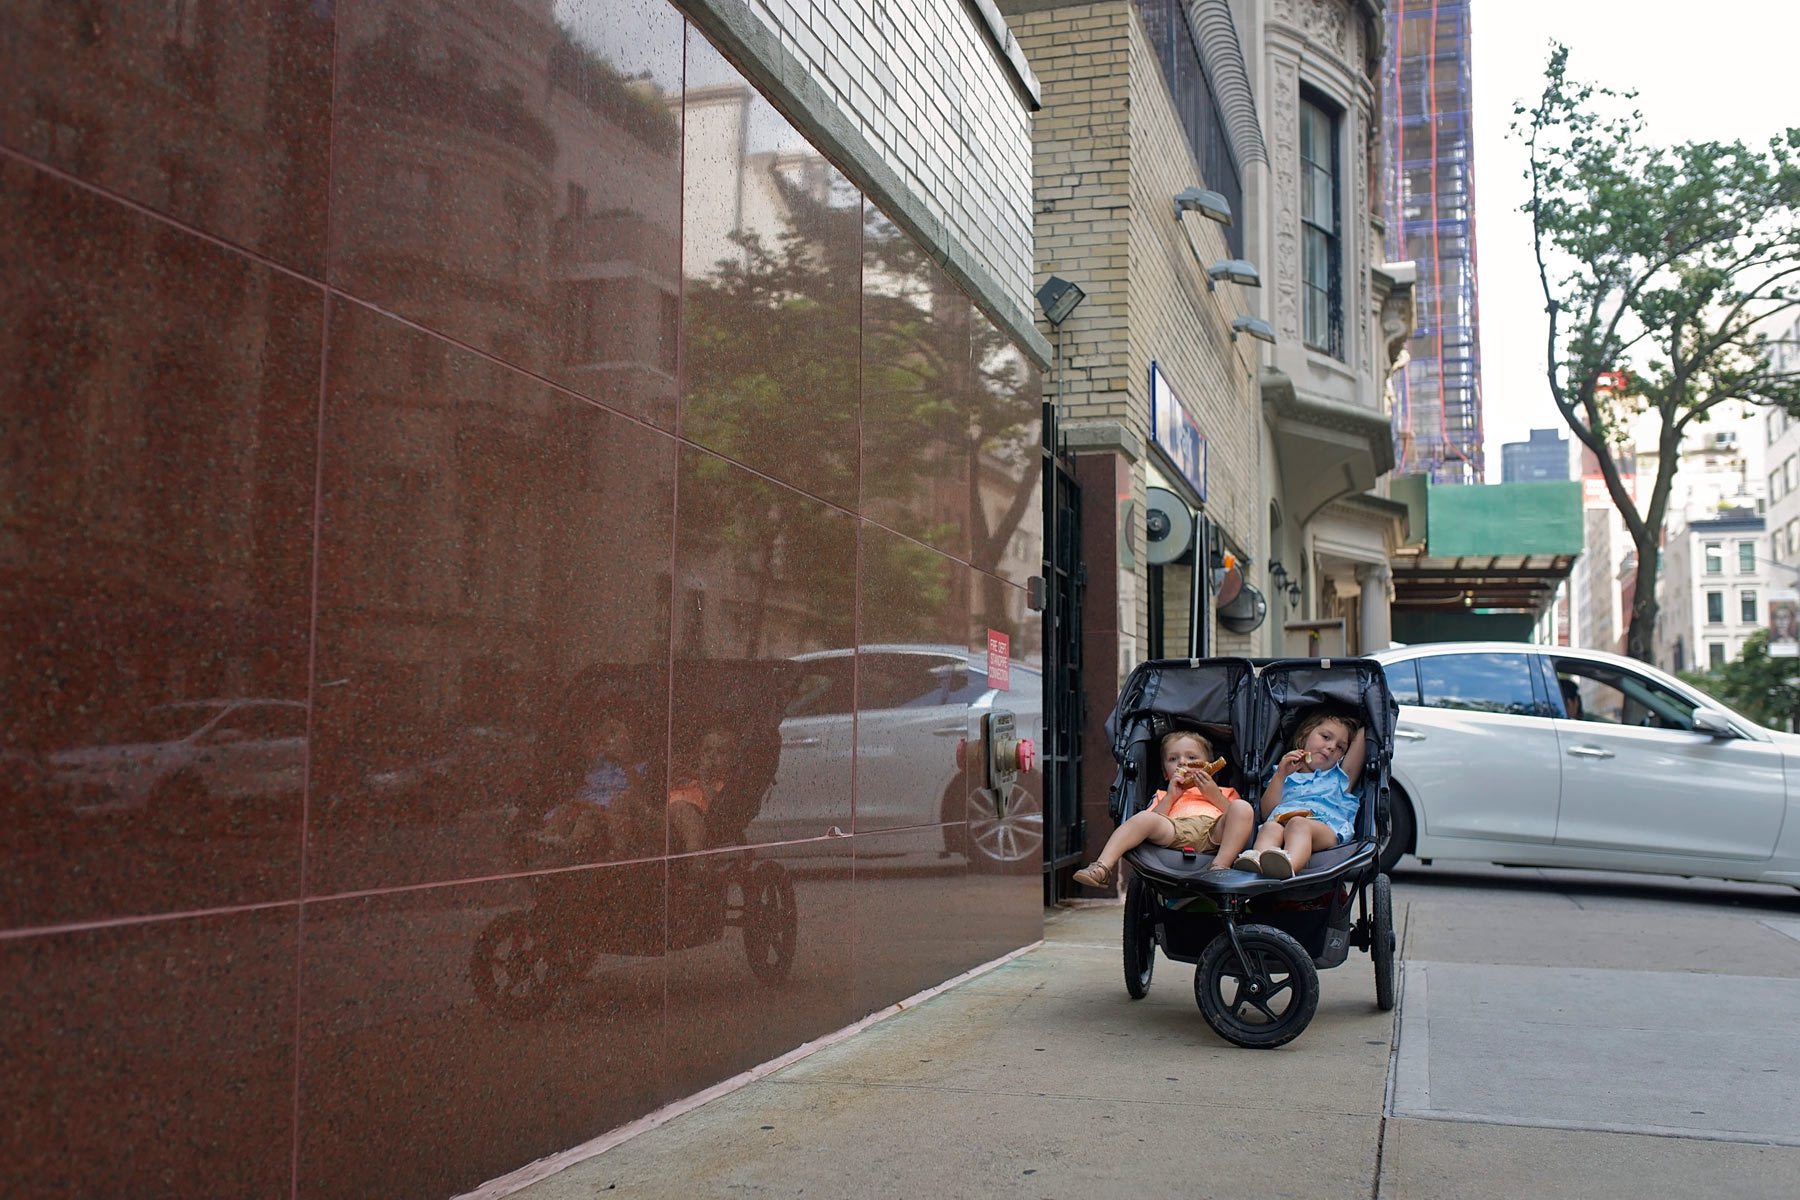 boy and girl sitting in double stroller eating a soft pretzel in NYC